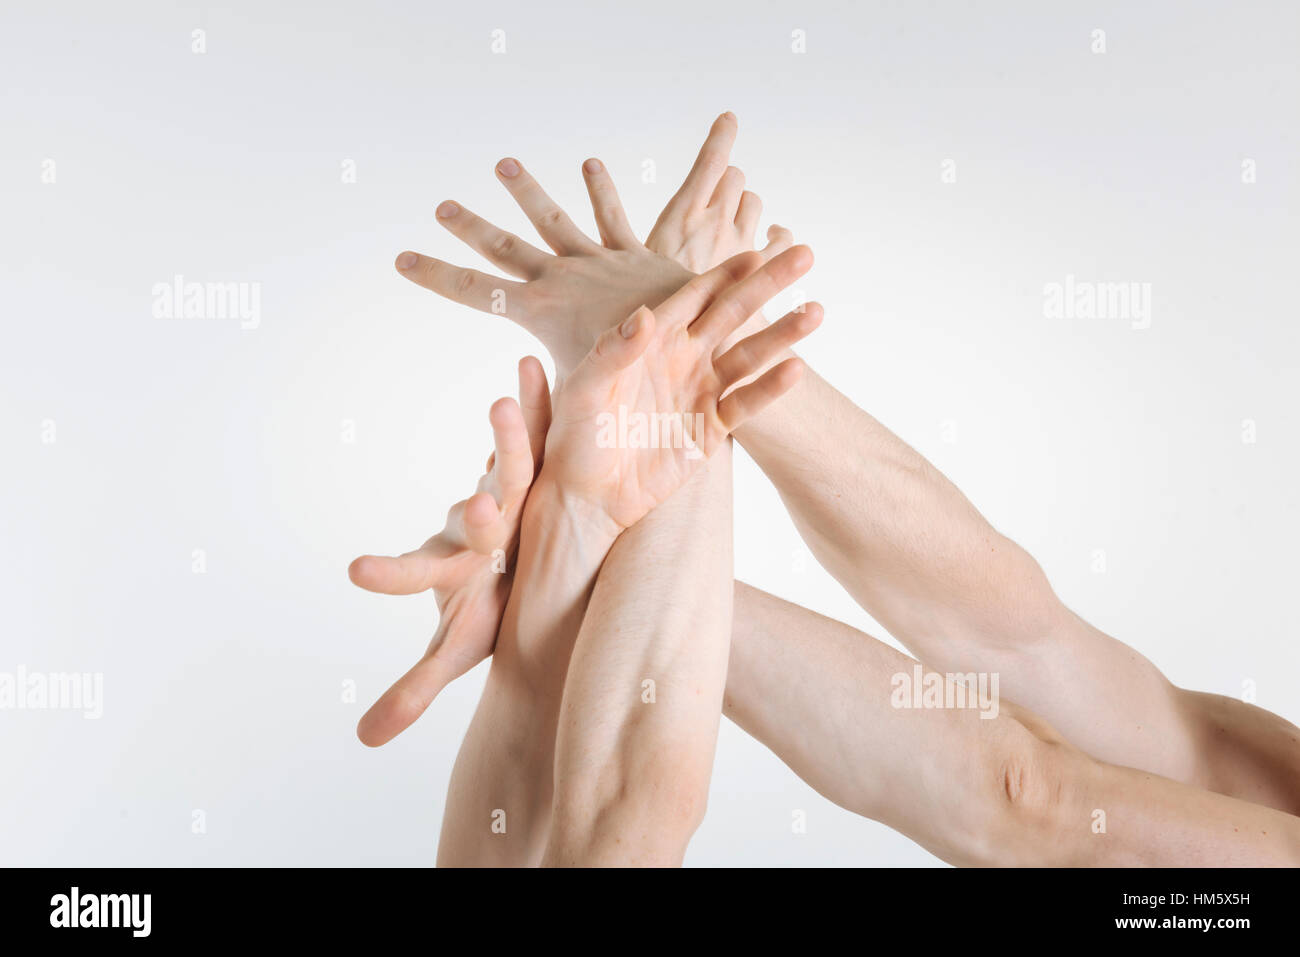 Tender gymnasts hands expressing grace in the studio - Stock Image